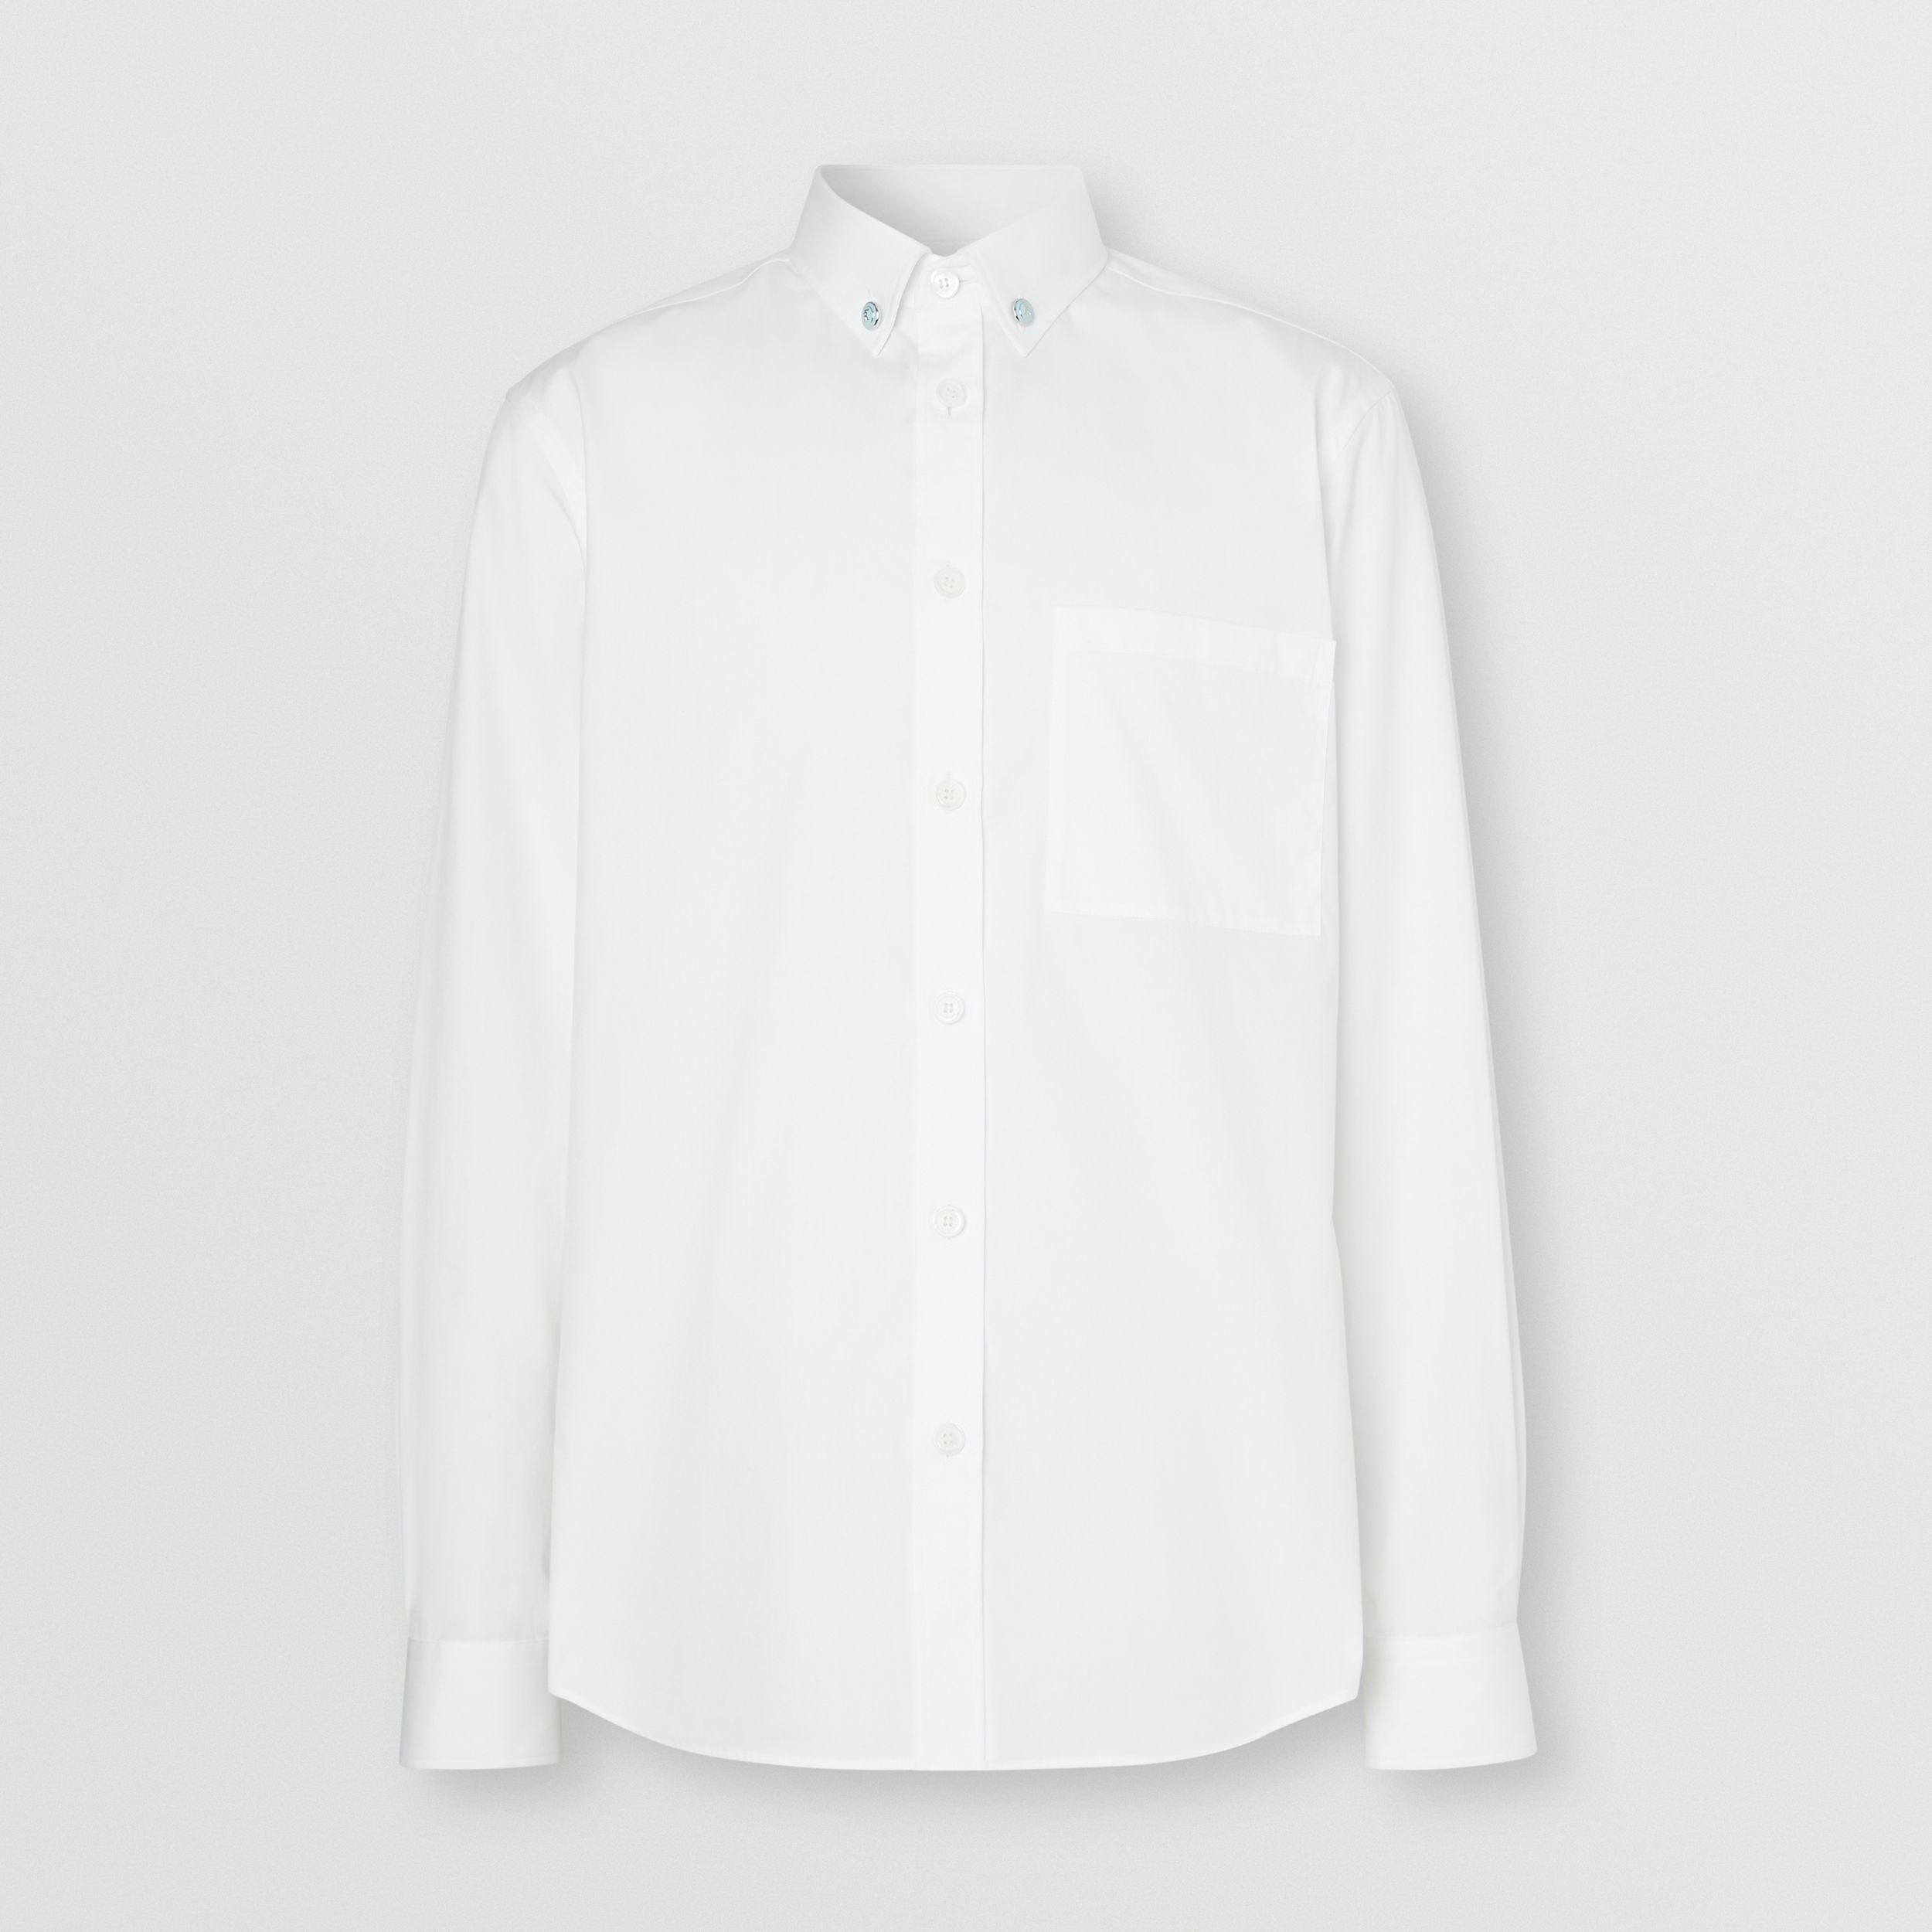 Slim Fit Stretch Cotton Poplin Shirt in White - Men | Burberry Singapore - 4